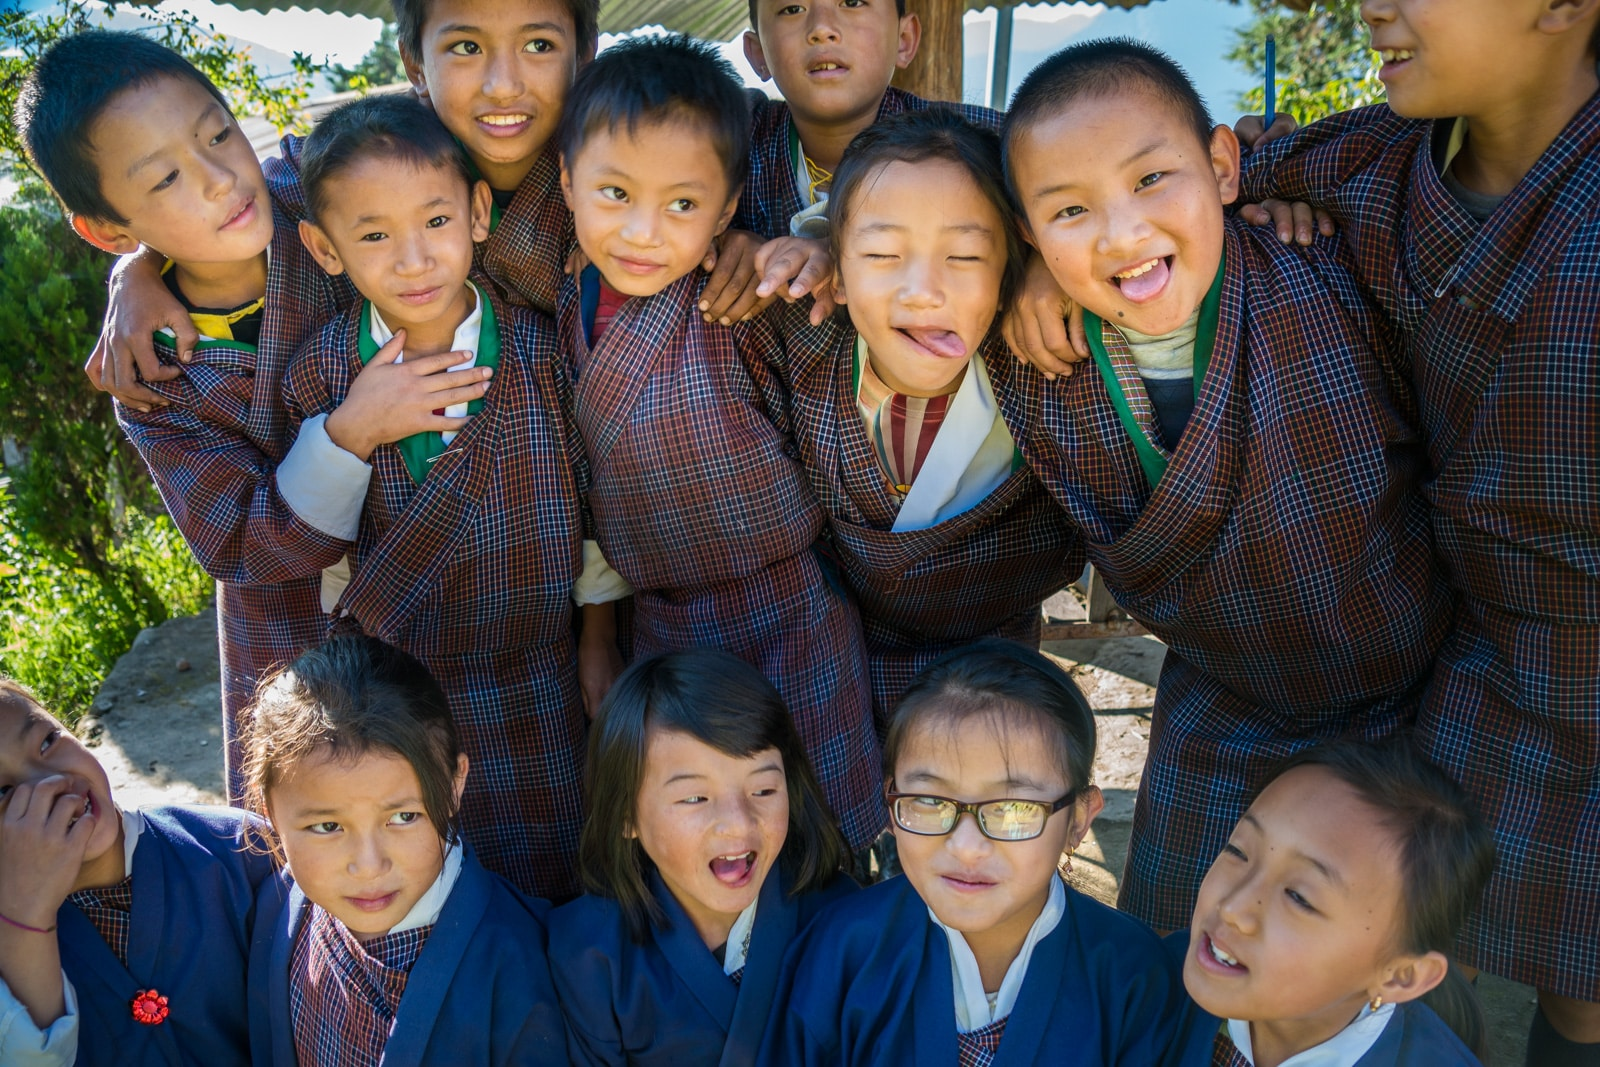 Our experience going on a guided tour in Bhutan - School children making faces in Kuengarabten - Lost With Purpose travel blog